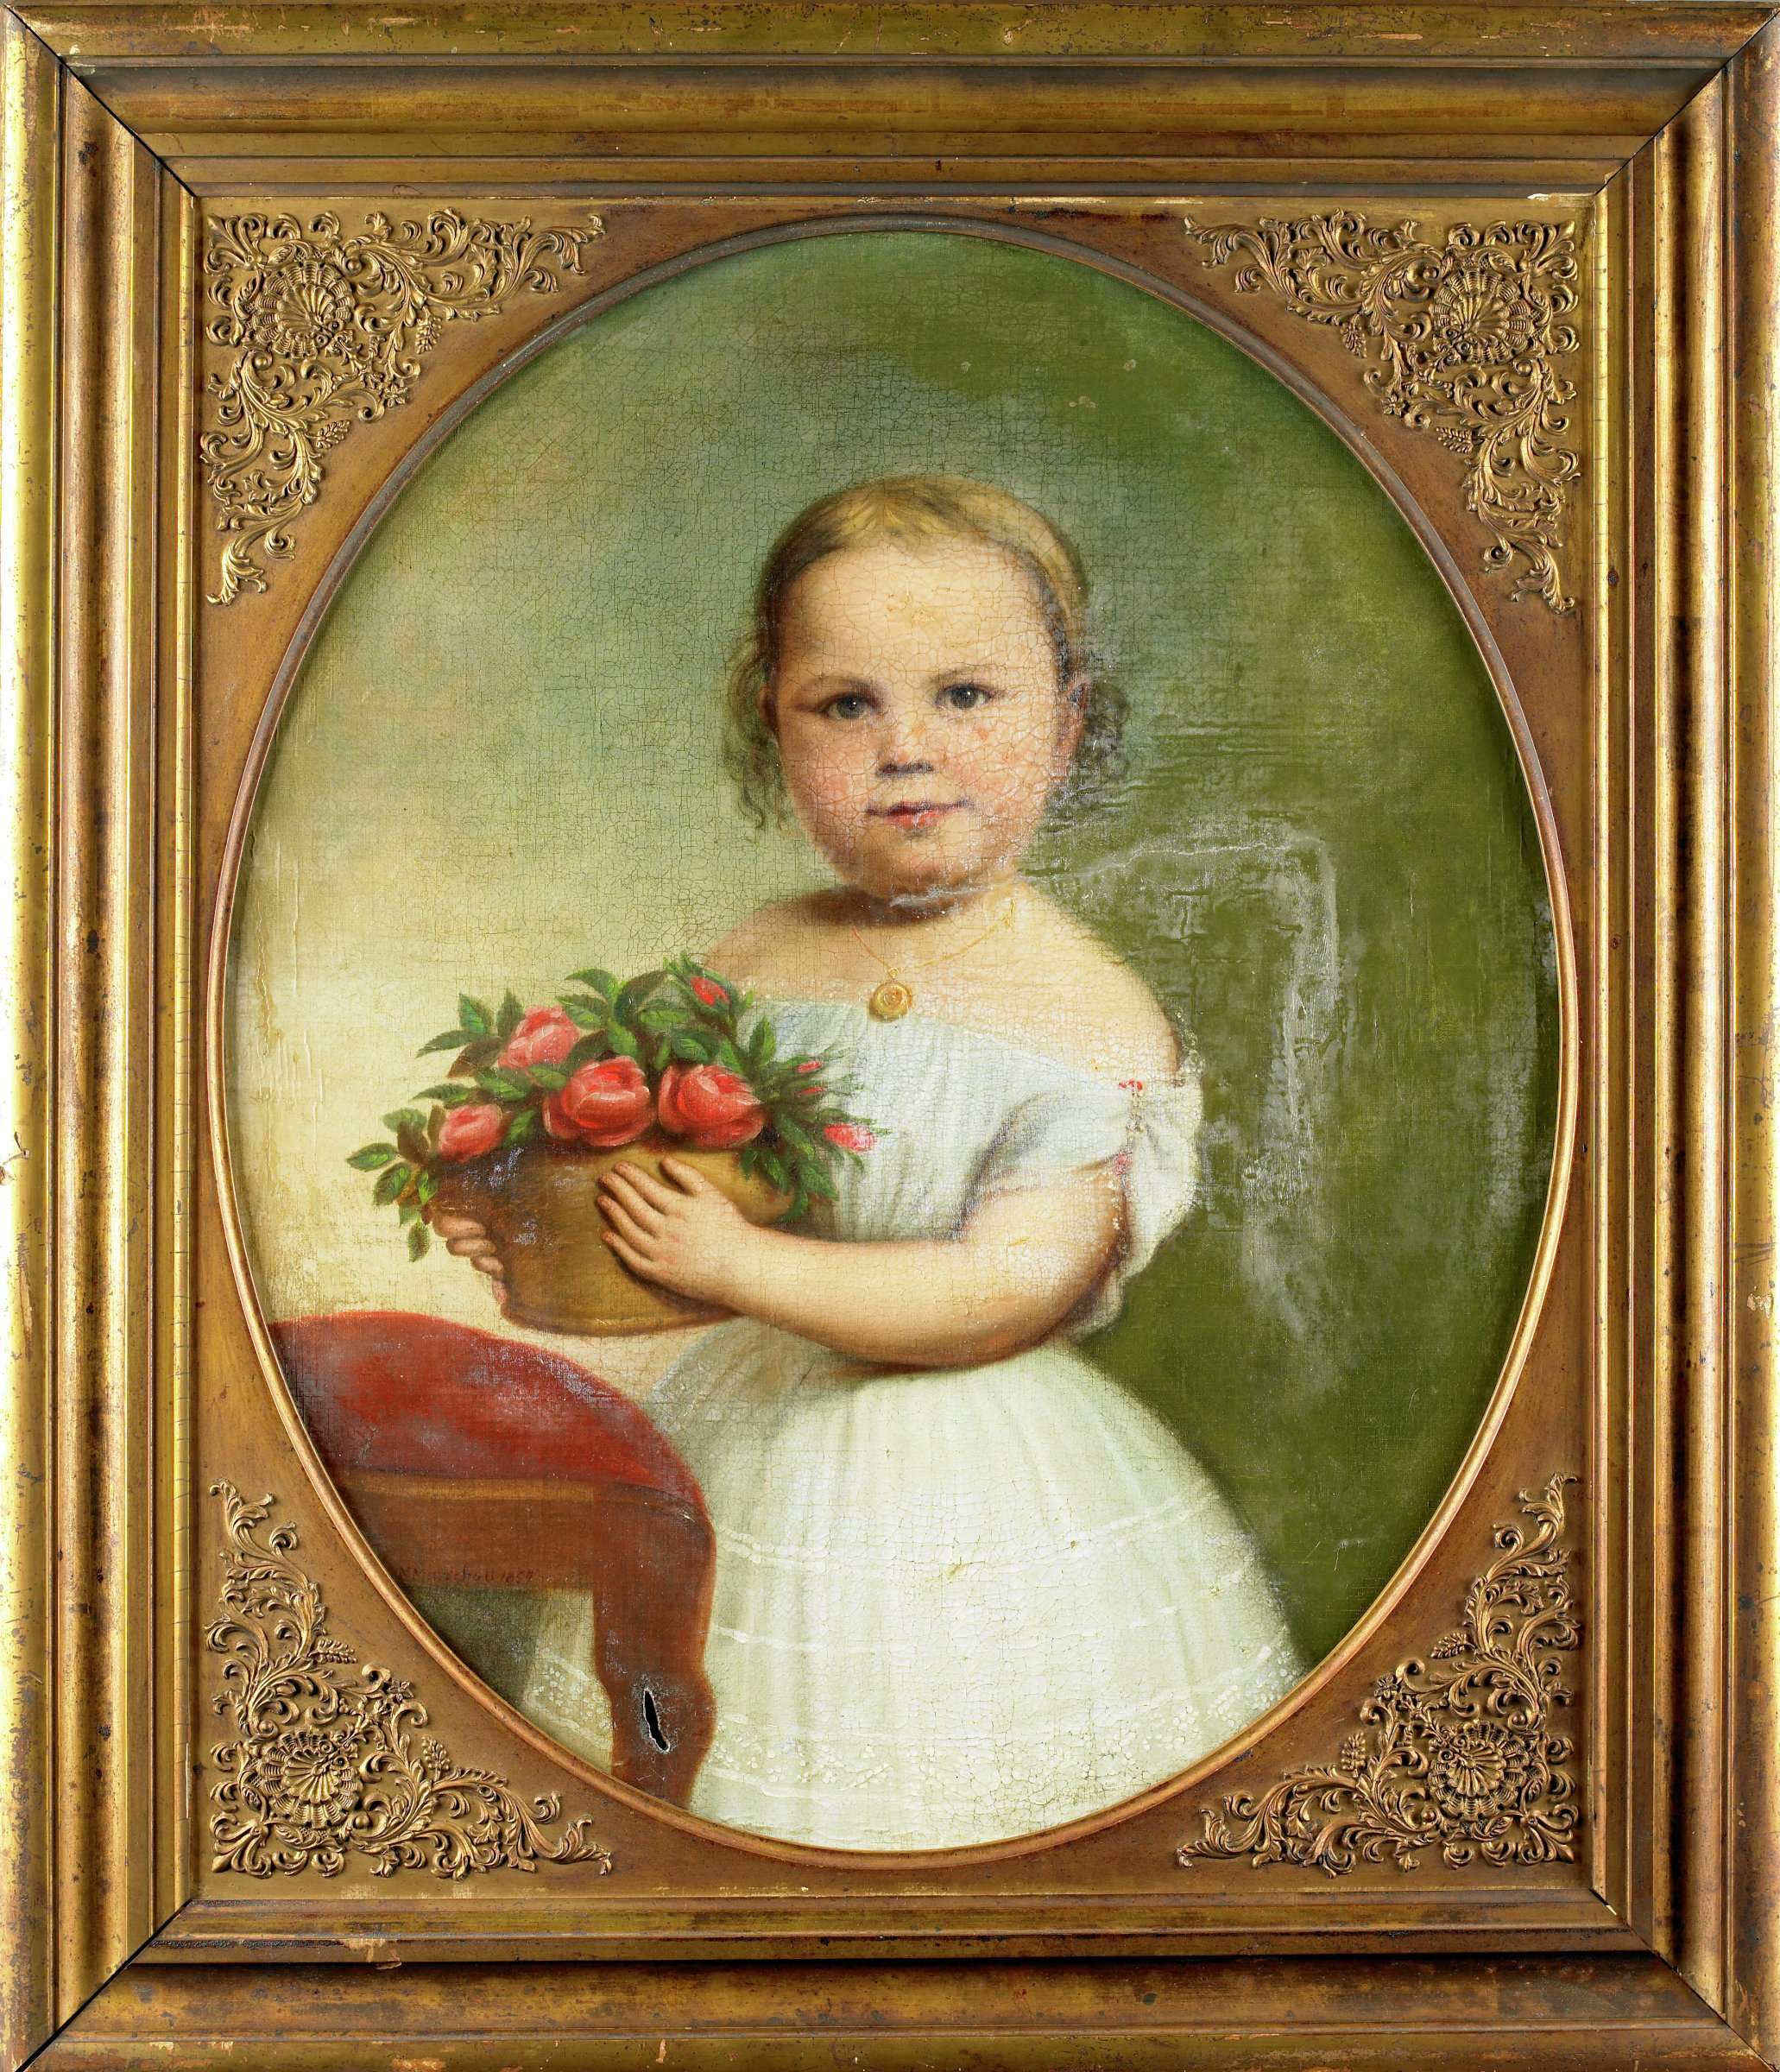 Three-quarter length portrait of girl with blonde hair, wearing a white dress, holding a basket of flowers. The seat and front legs of a red upholstered chair is visible at left.